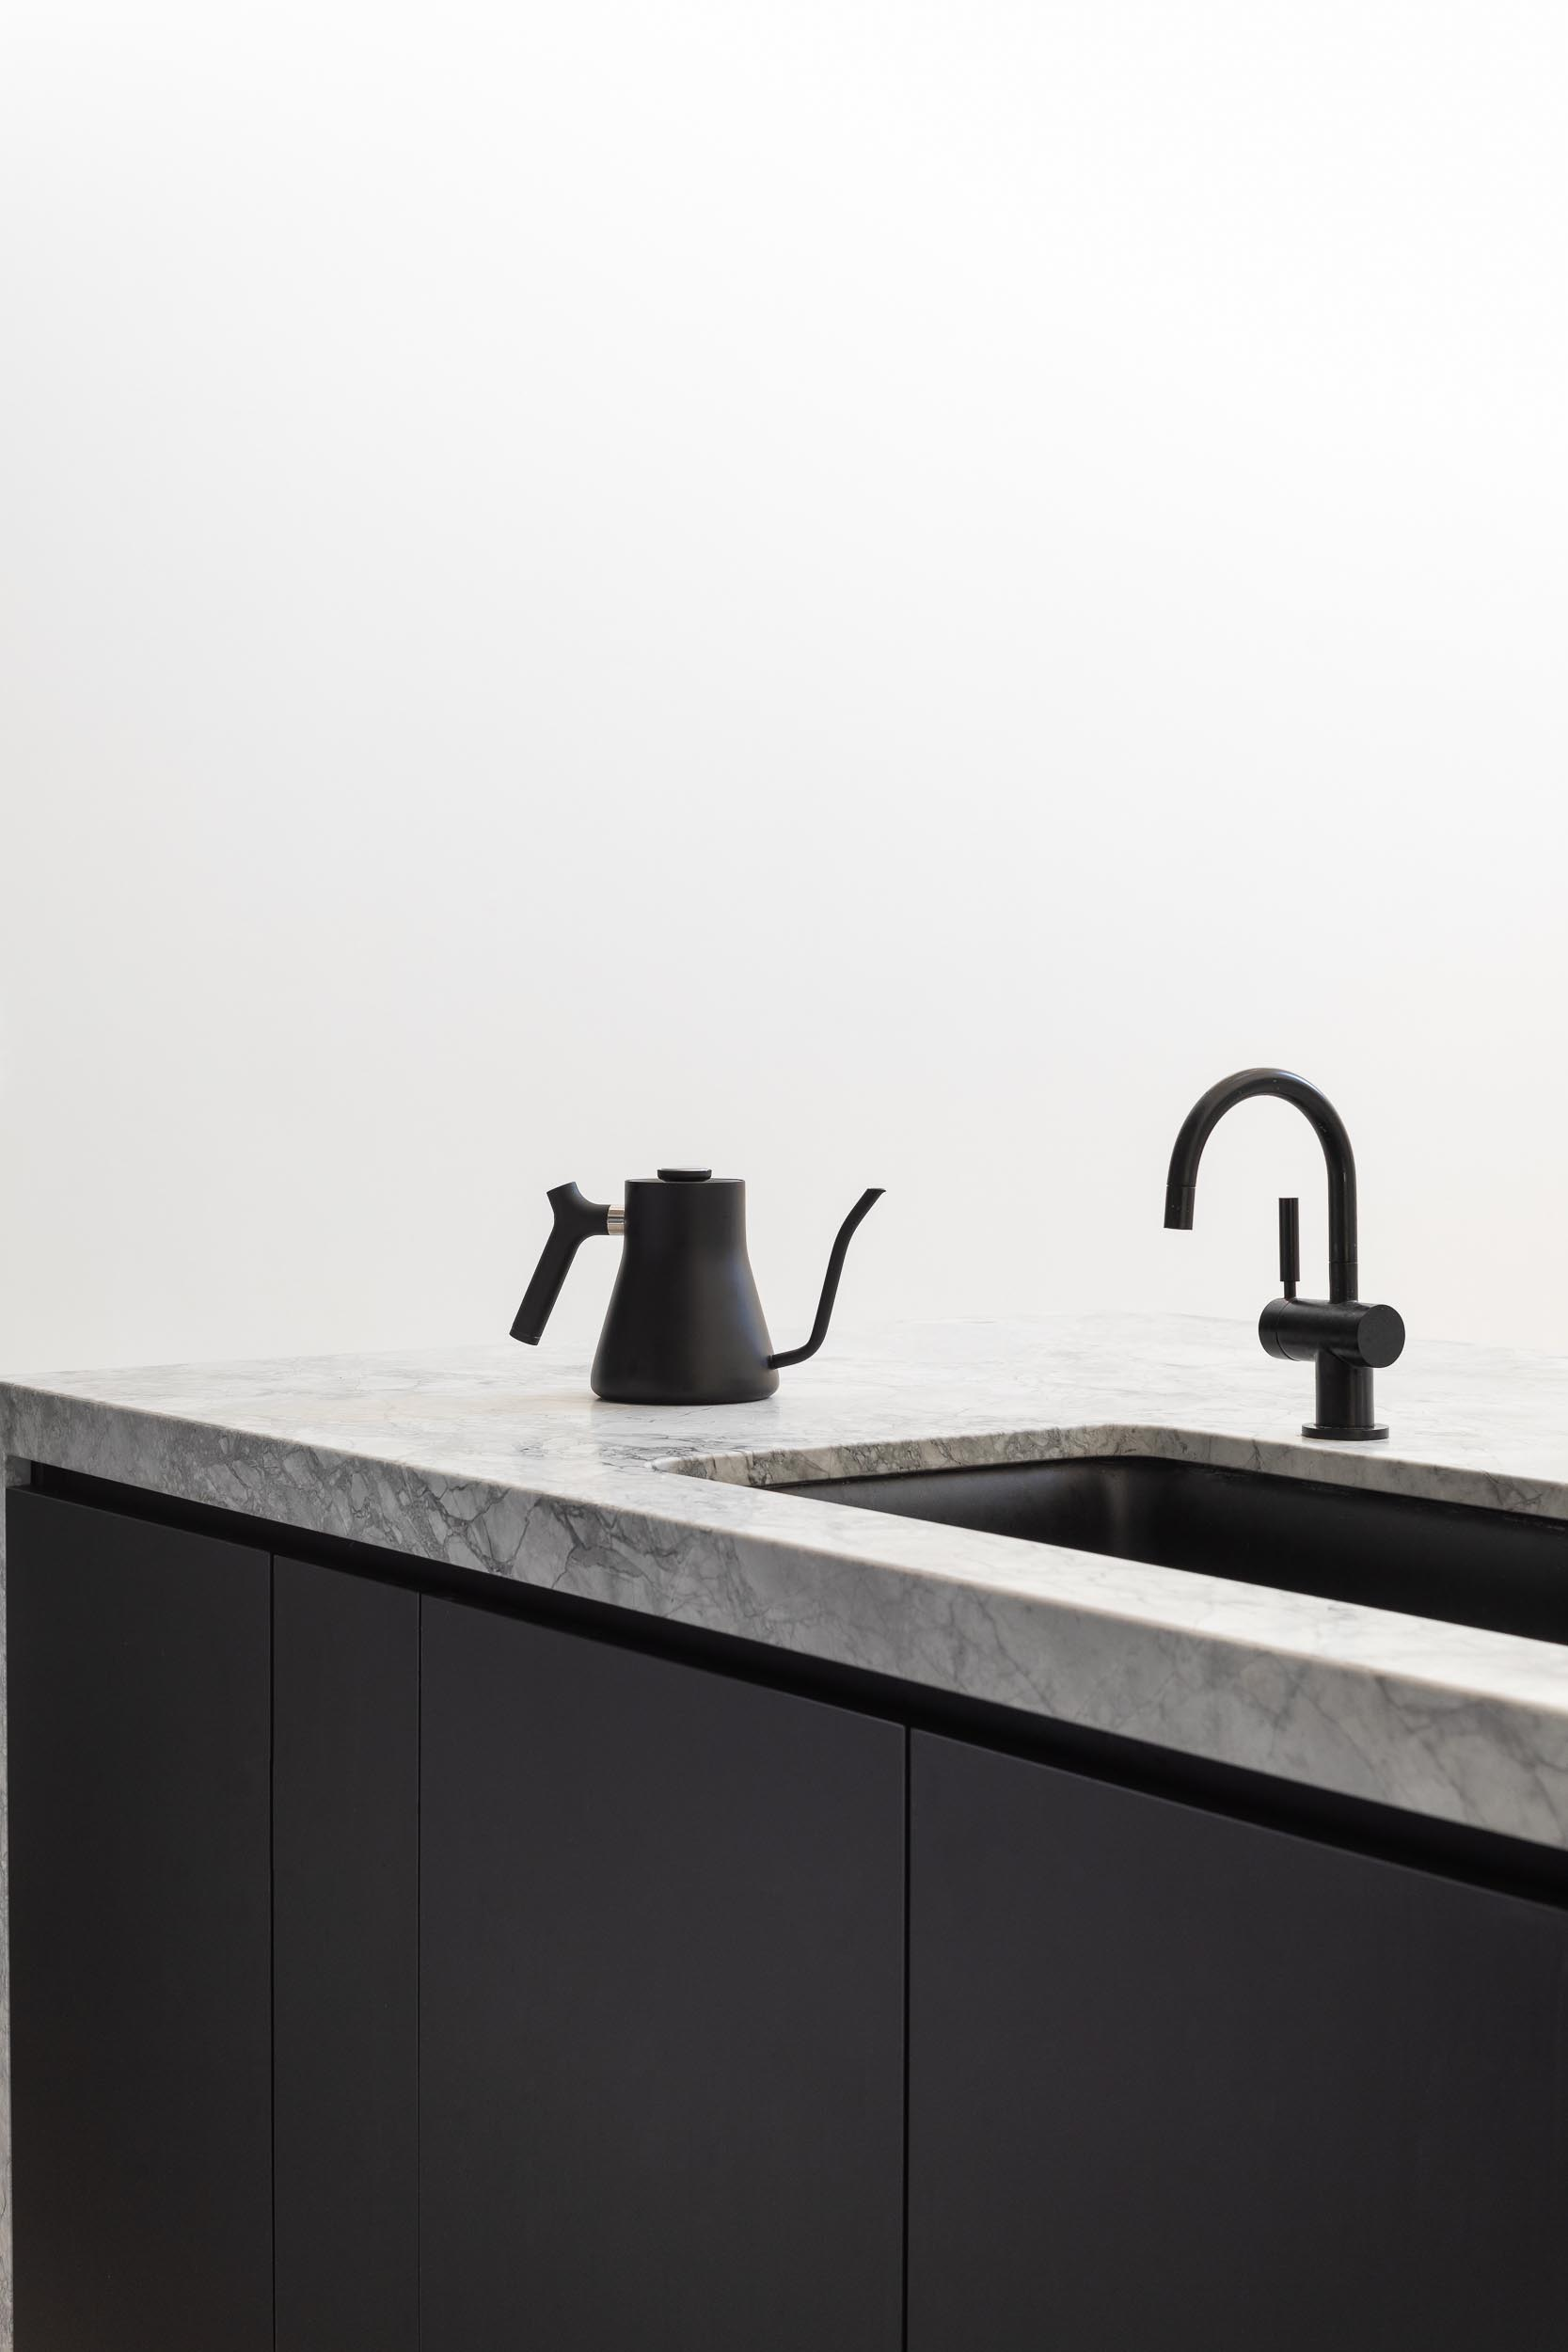 A modern kitchen island with matte black cabinets, and a matching matte black sink and faucet.